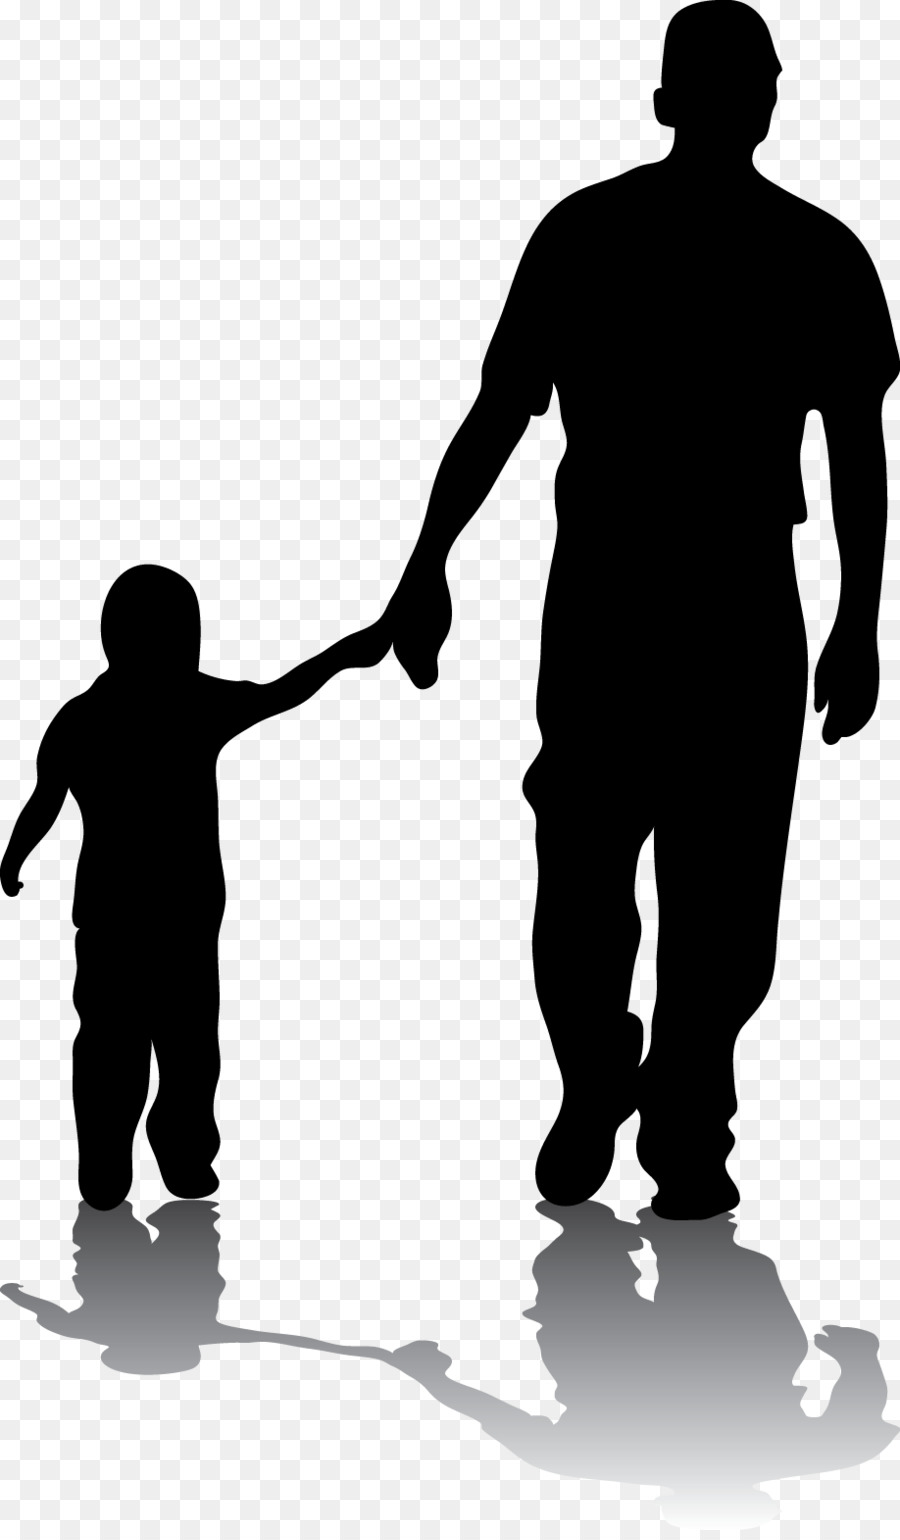 father silhouette son daughter family father png free hockey clipart vector free hockey clipart graphics